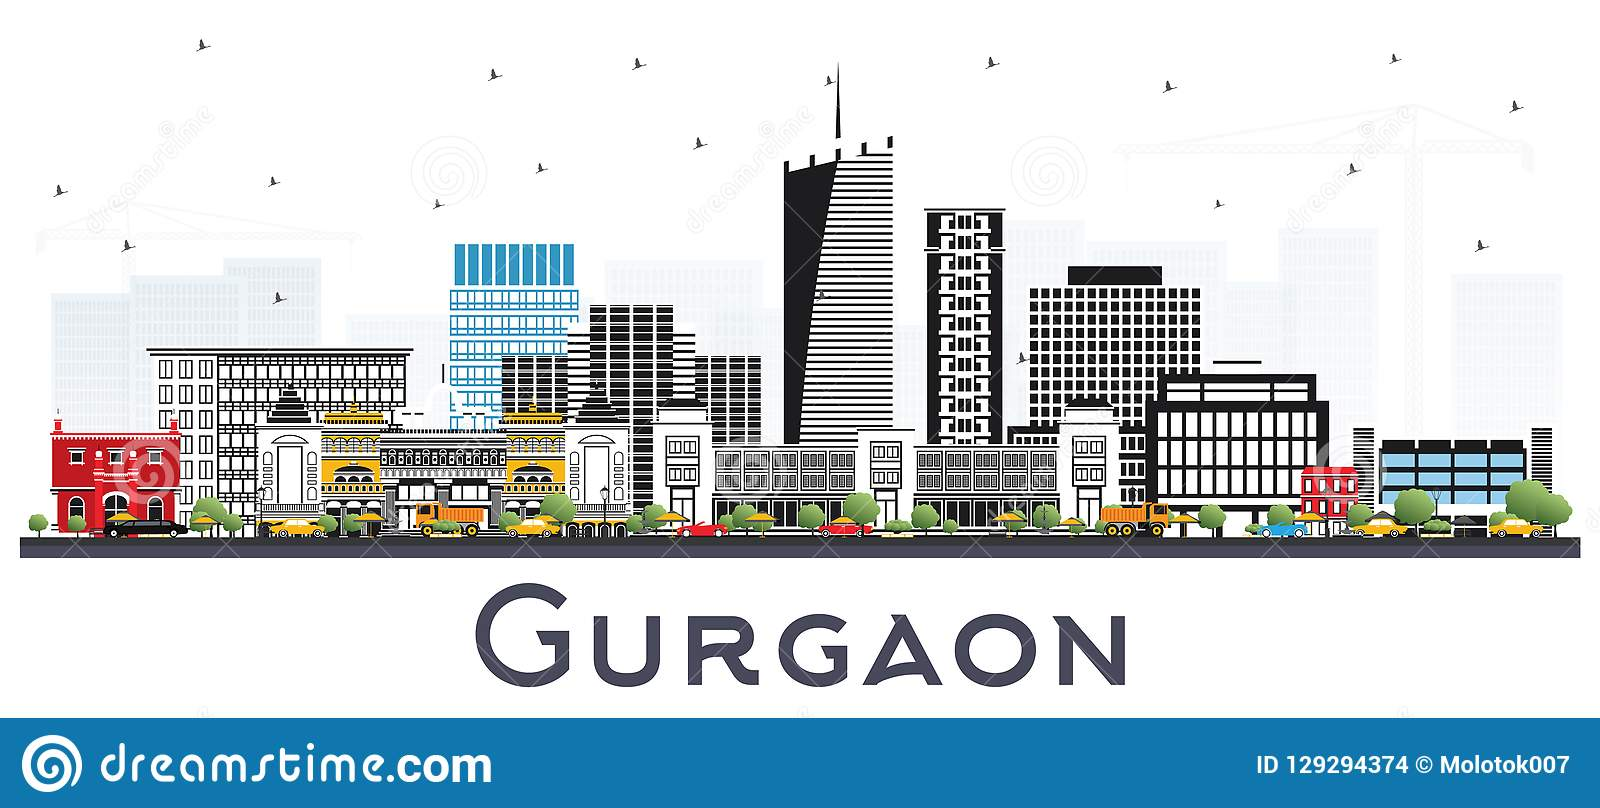 Gurgaon India City Skyline with Gray Buildings Isolated on White